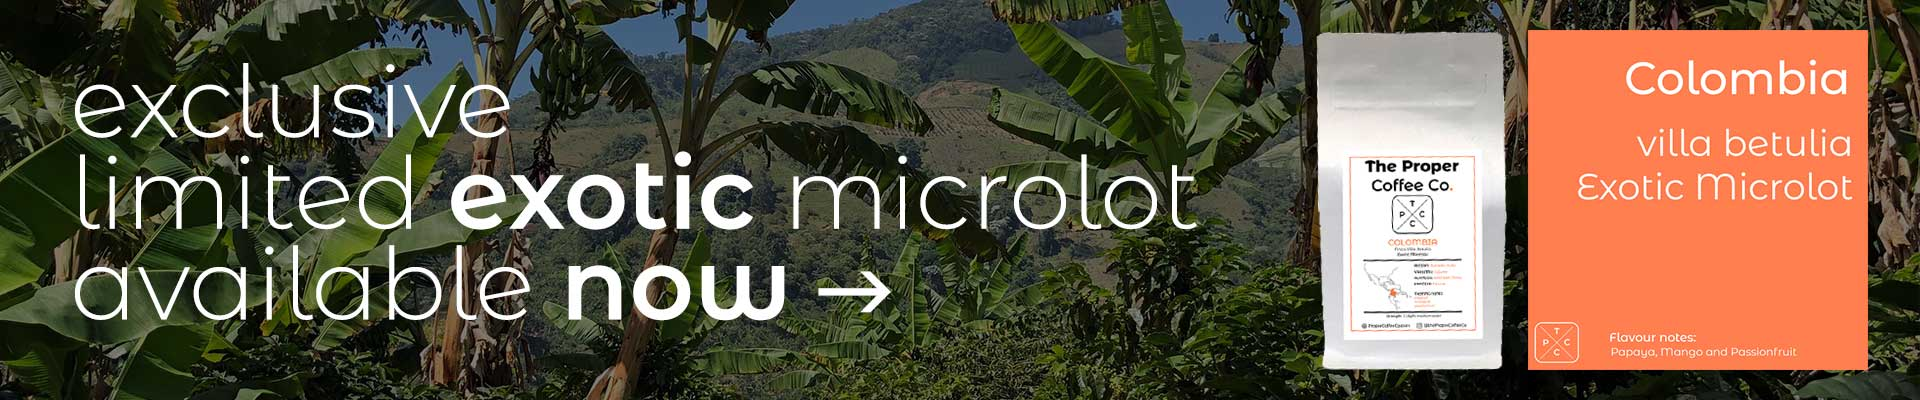 Exclusive Exotic Microlot Coffee from Colombia